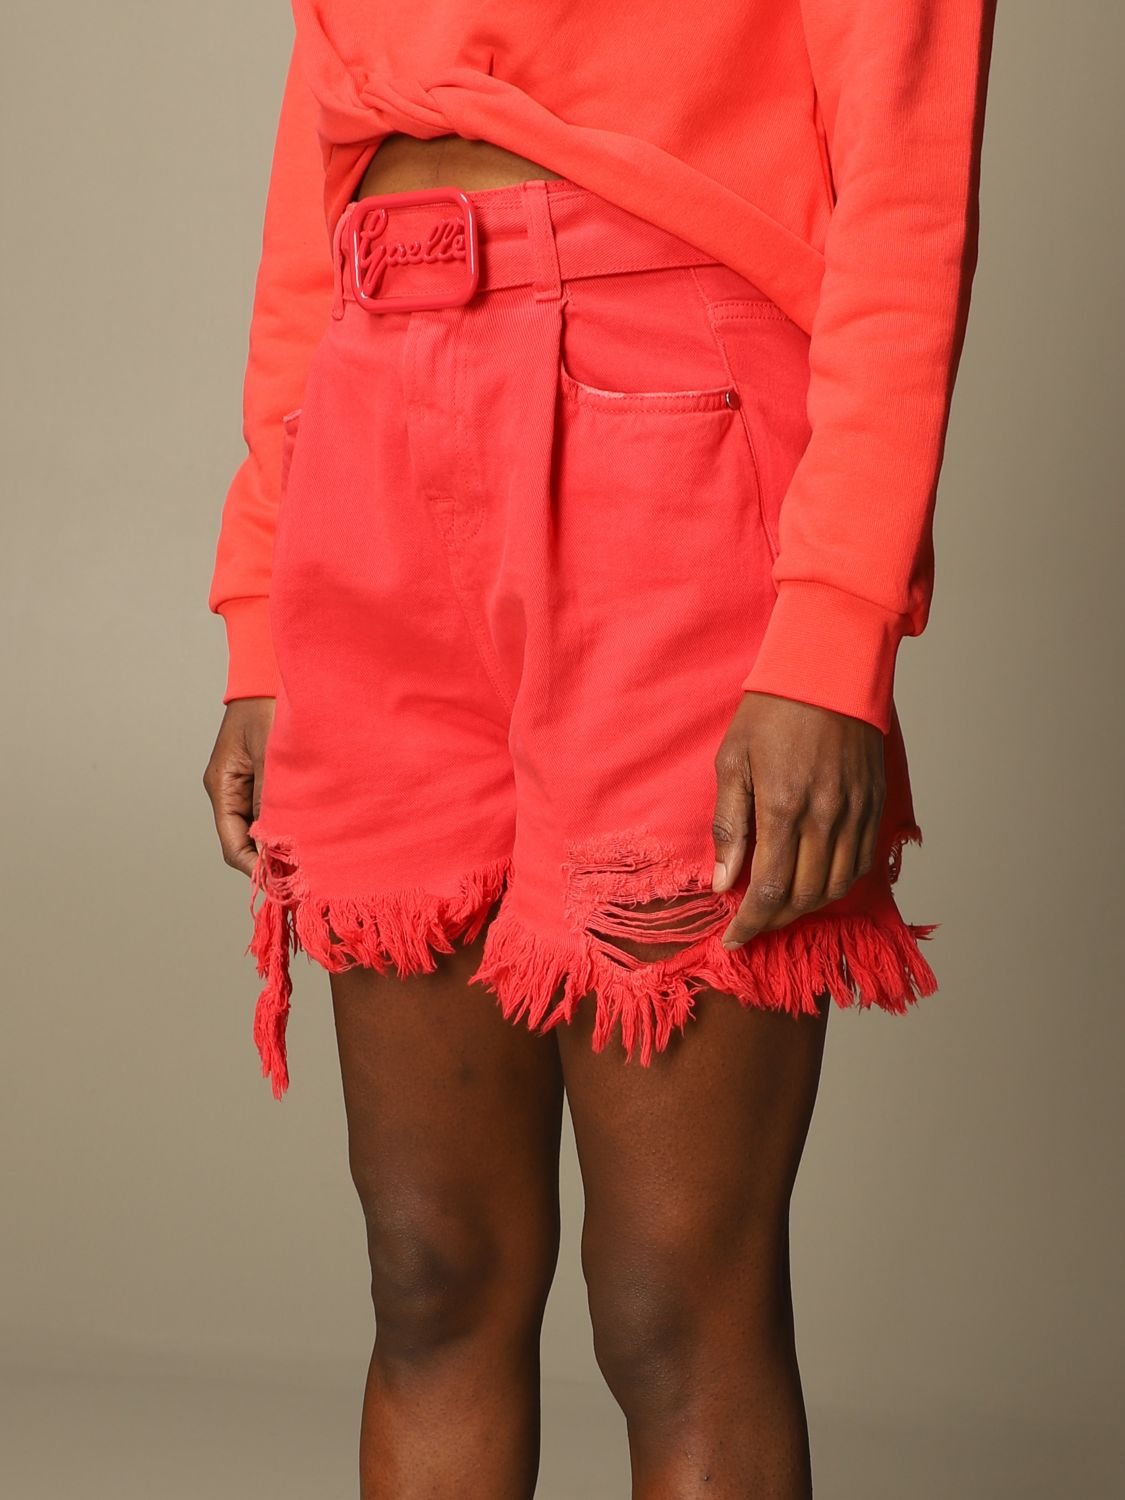 Short fragola gaelle paris